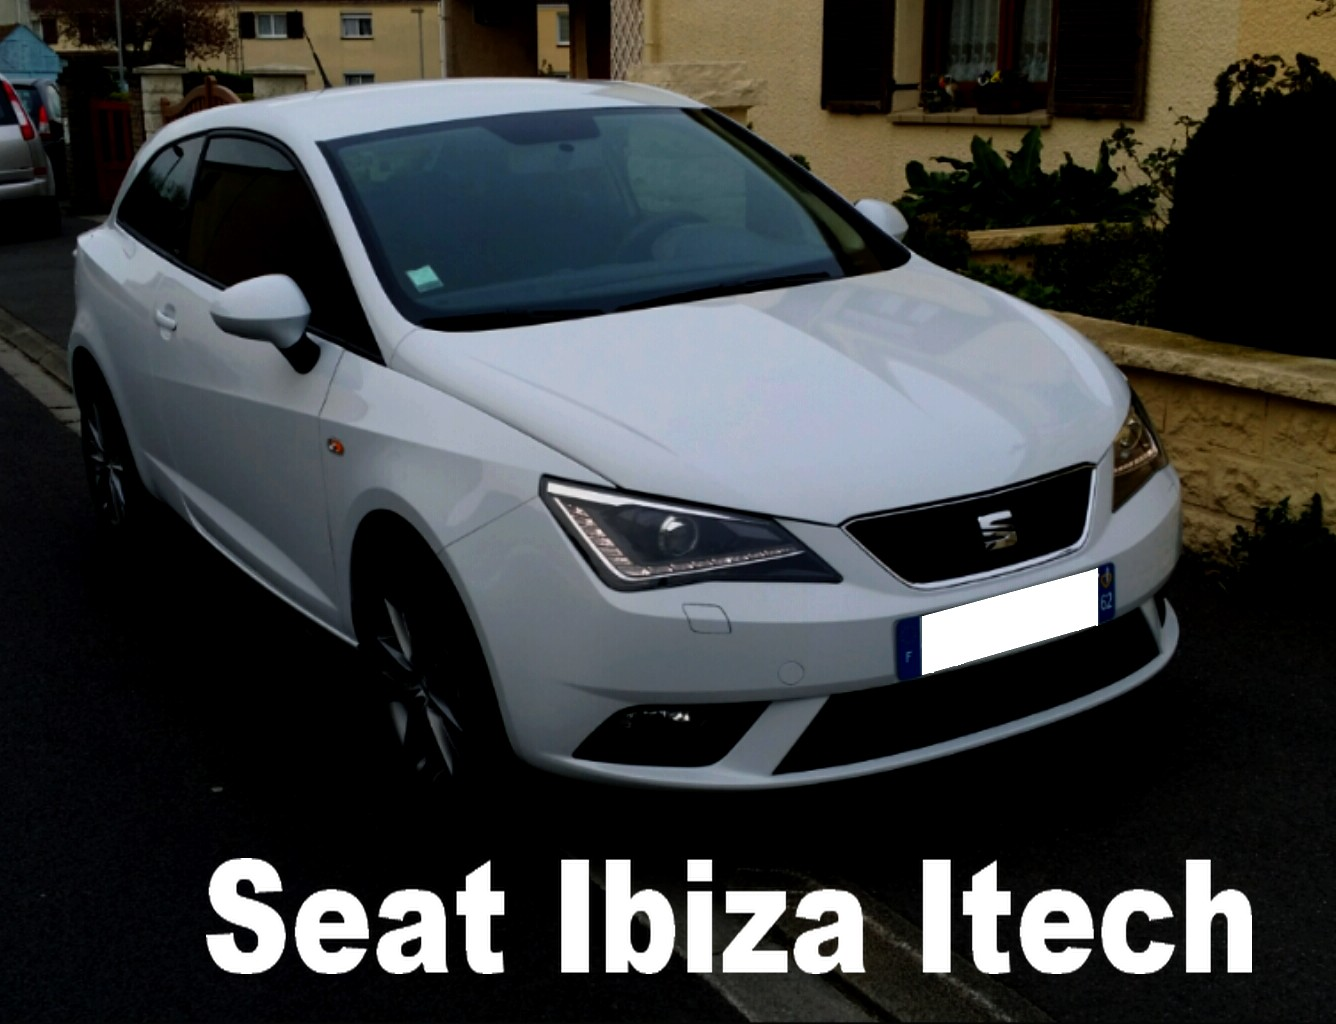 pr sentation de ma new seat ibiza itech 1 2 tsi 105 ch ibiza seat forum marques. Black Bedroom Furniture Sets. Home Design Ideas